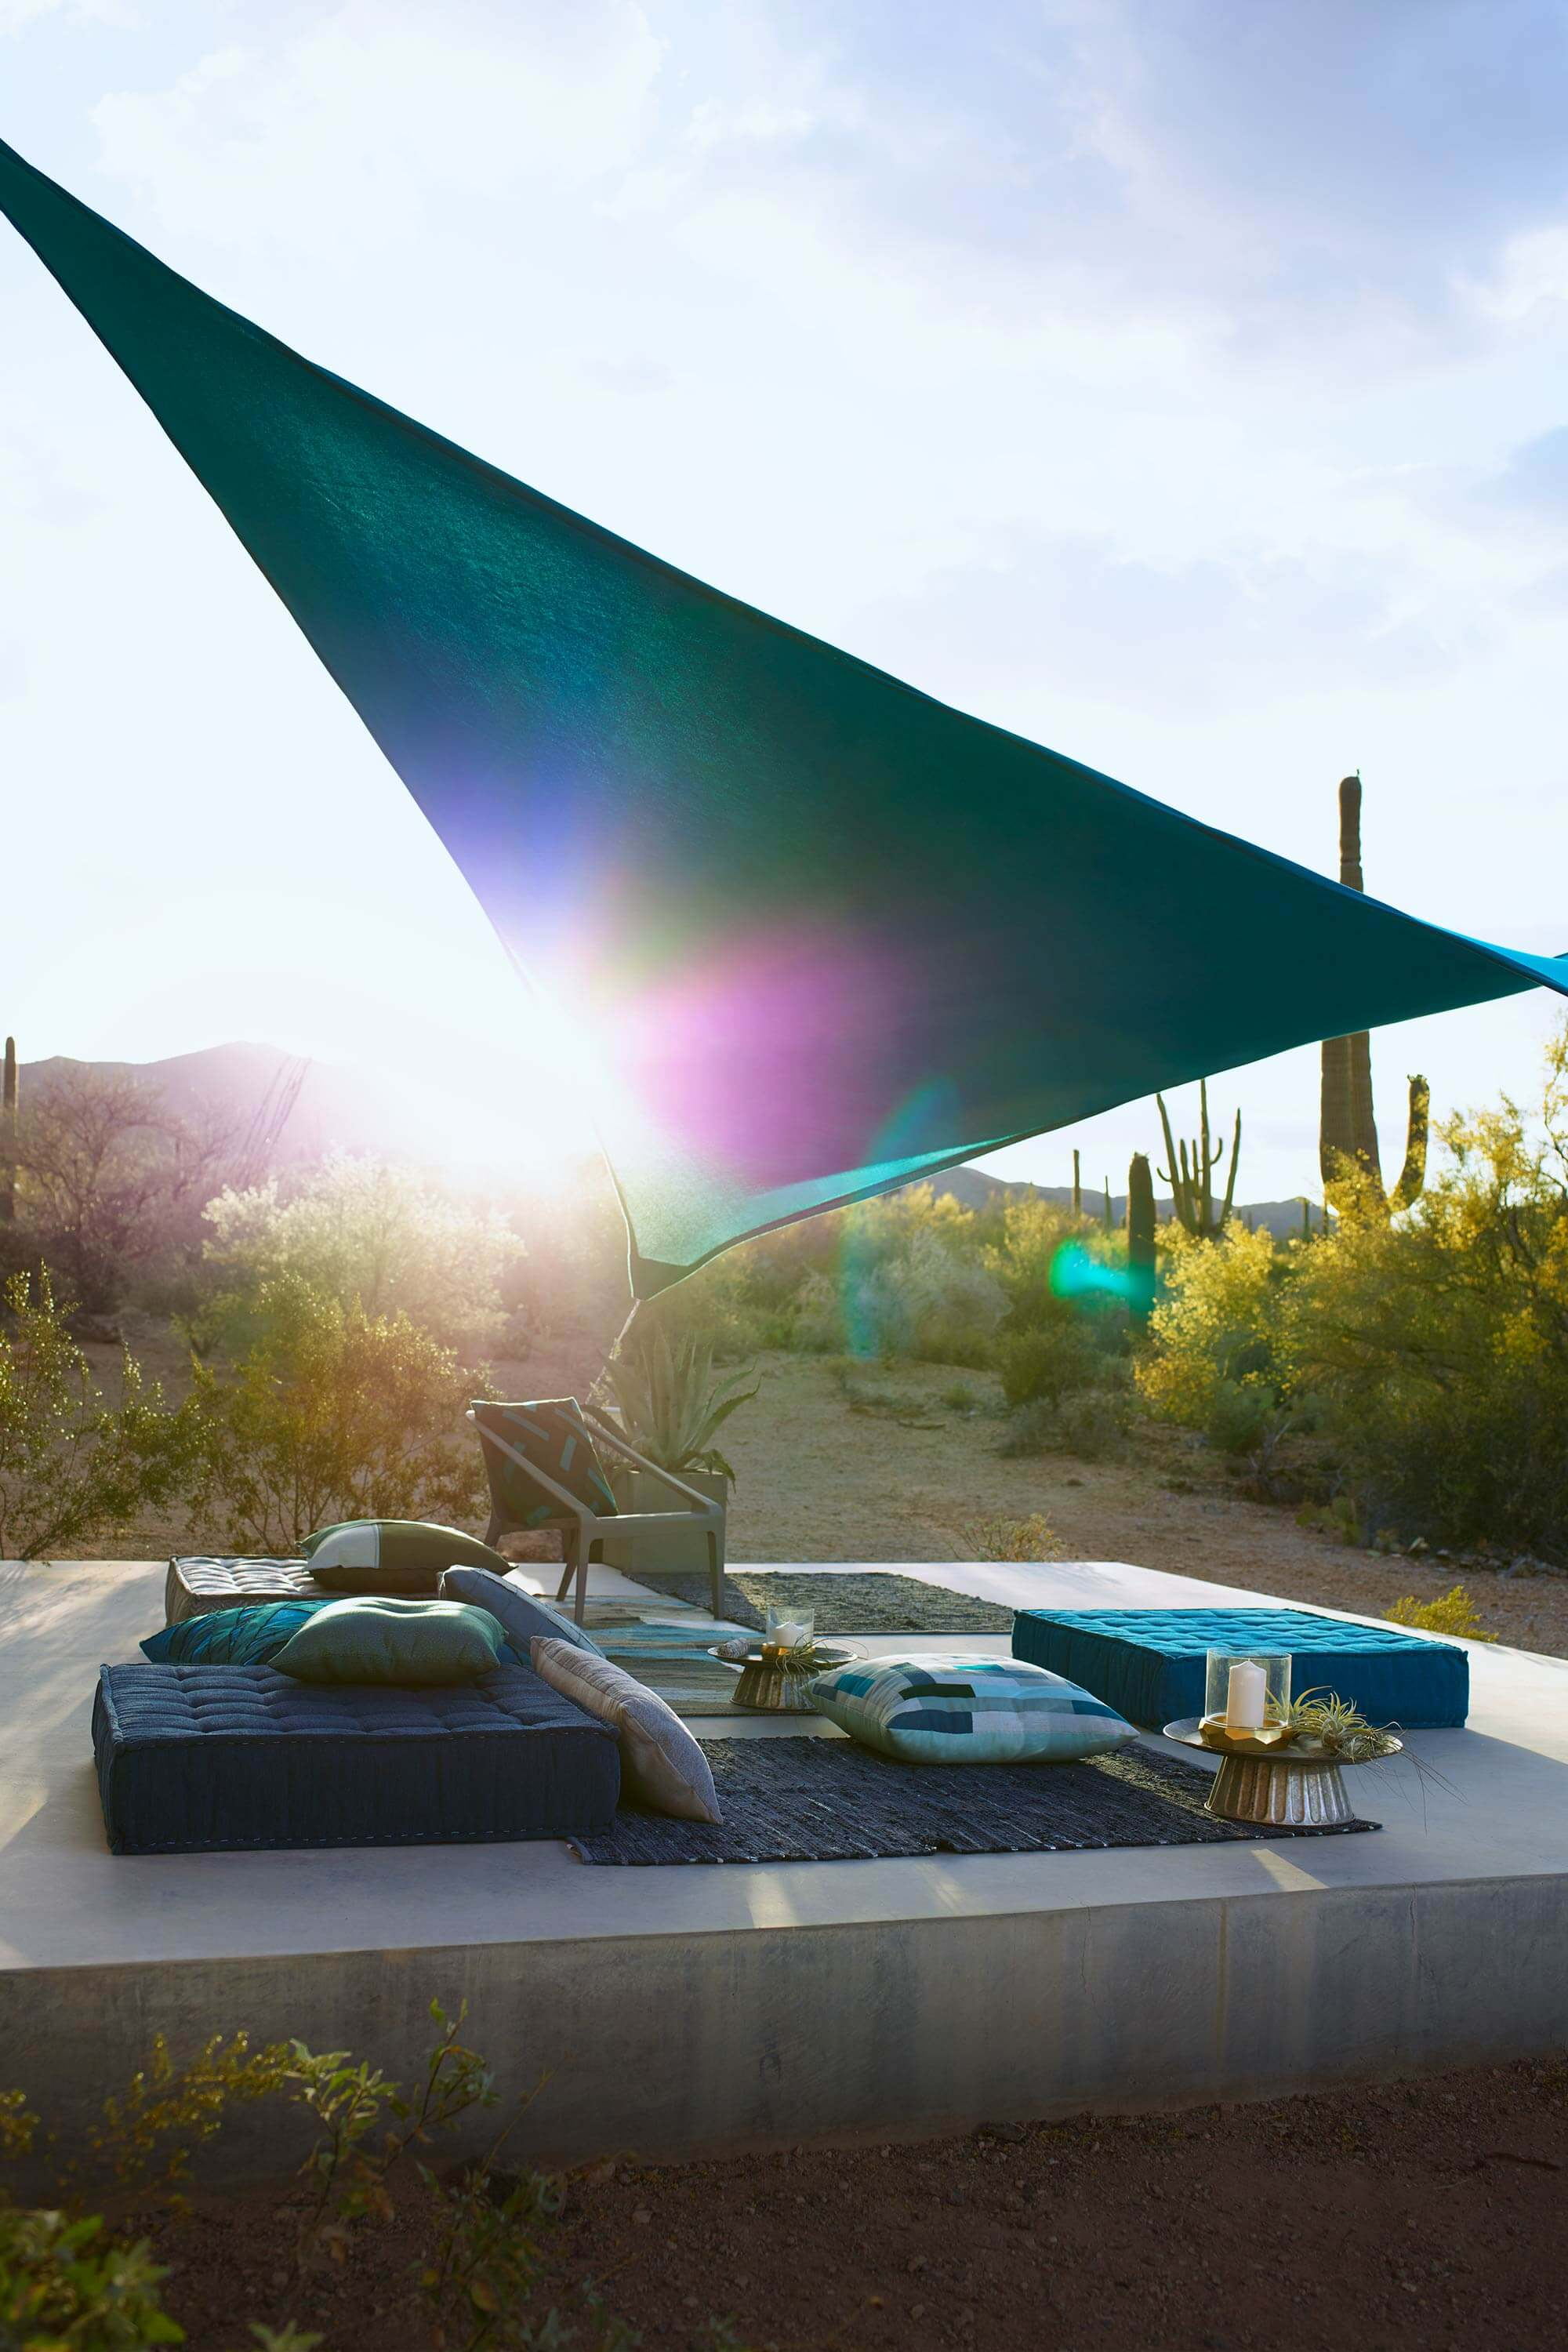 Outdoor seating of floor pillows covered with shade sail made using teal Sunbrella Contour fabric